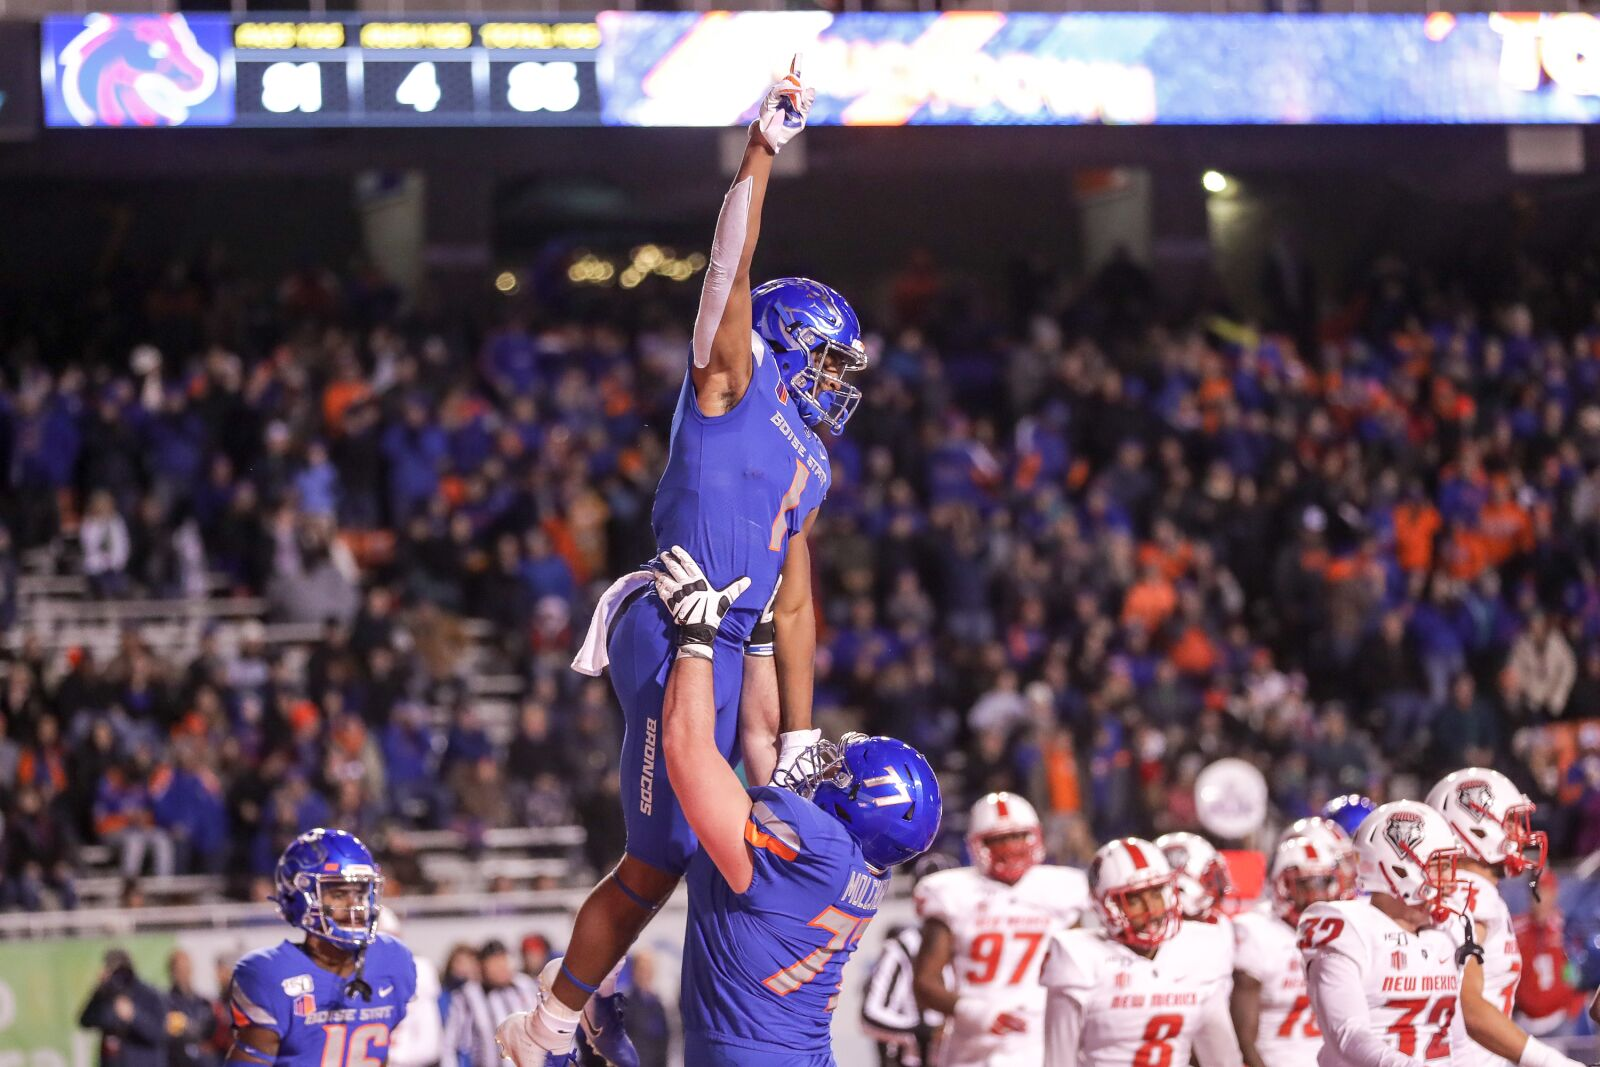 Boise State Football: 3 takeaways from MWC blowout of New Mexico